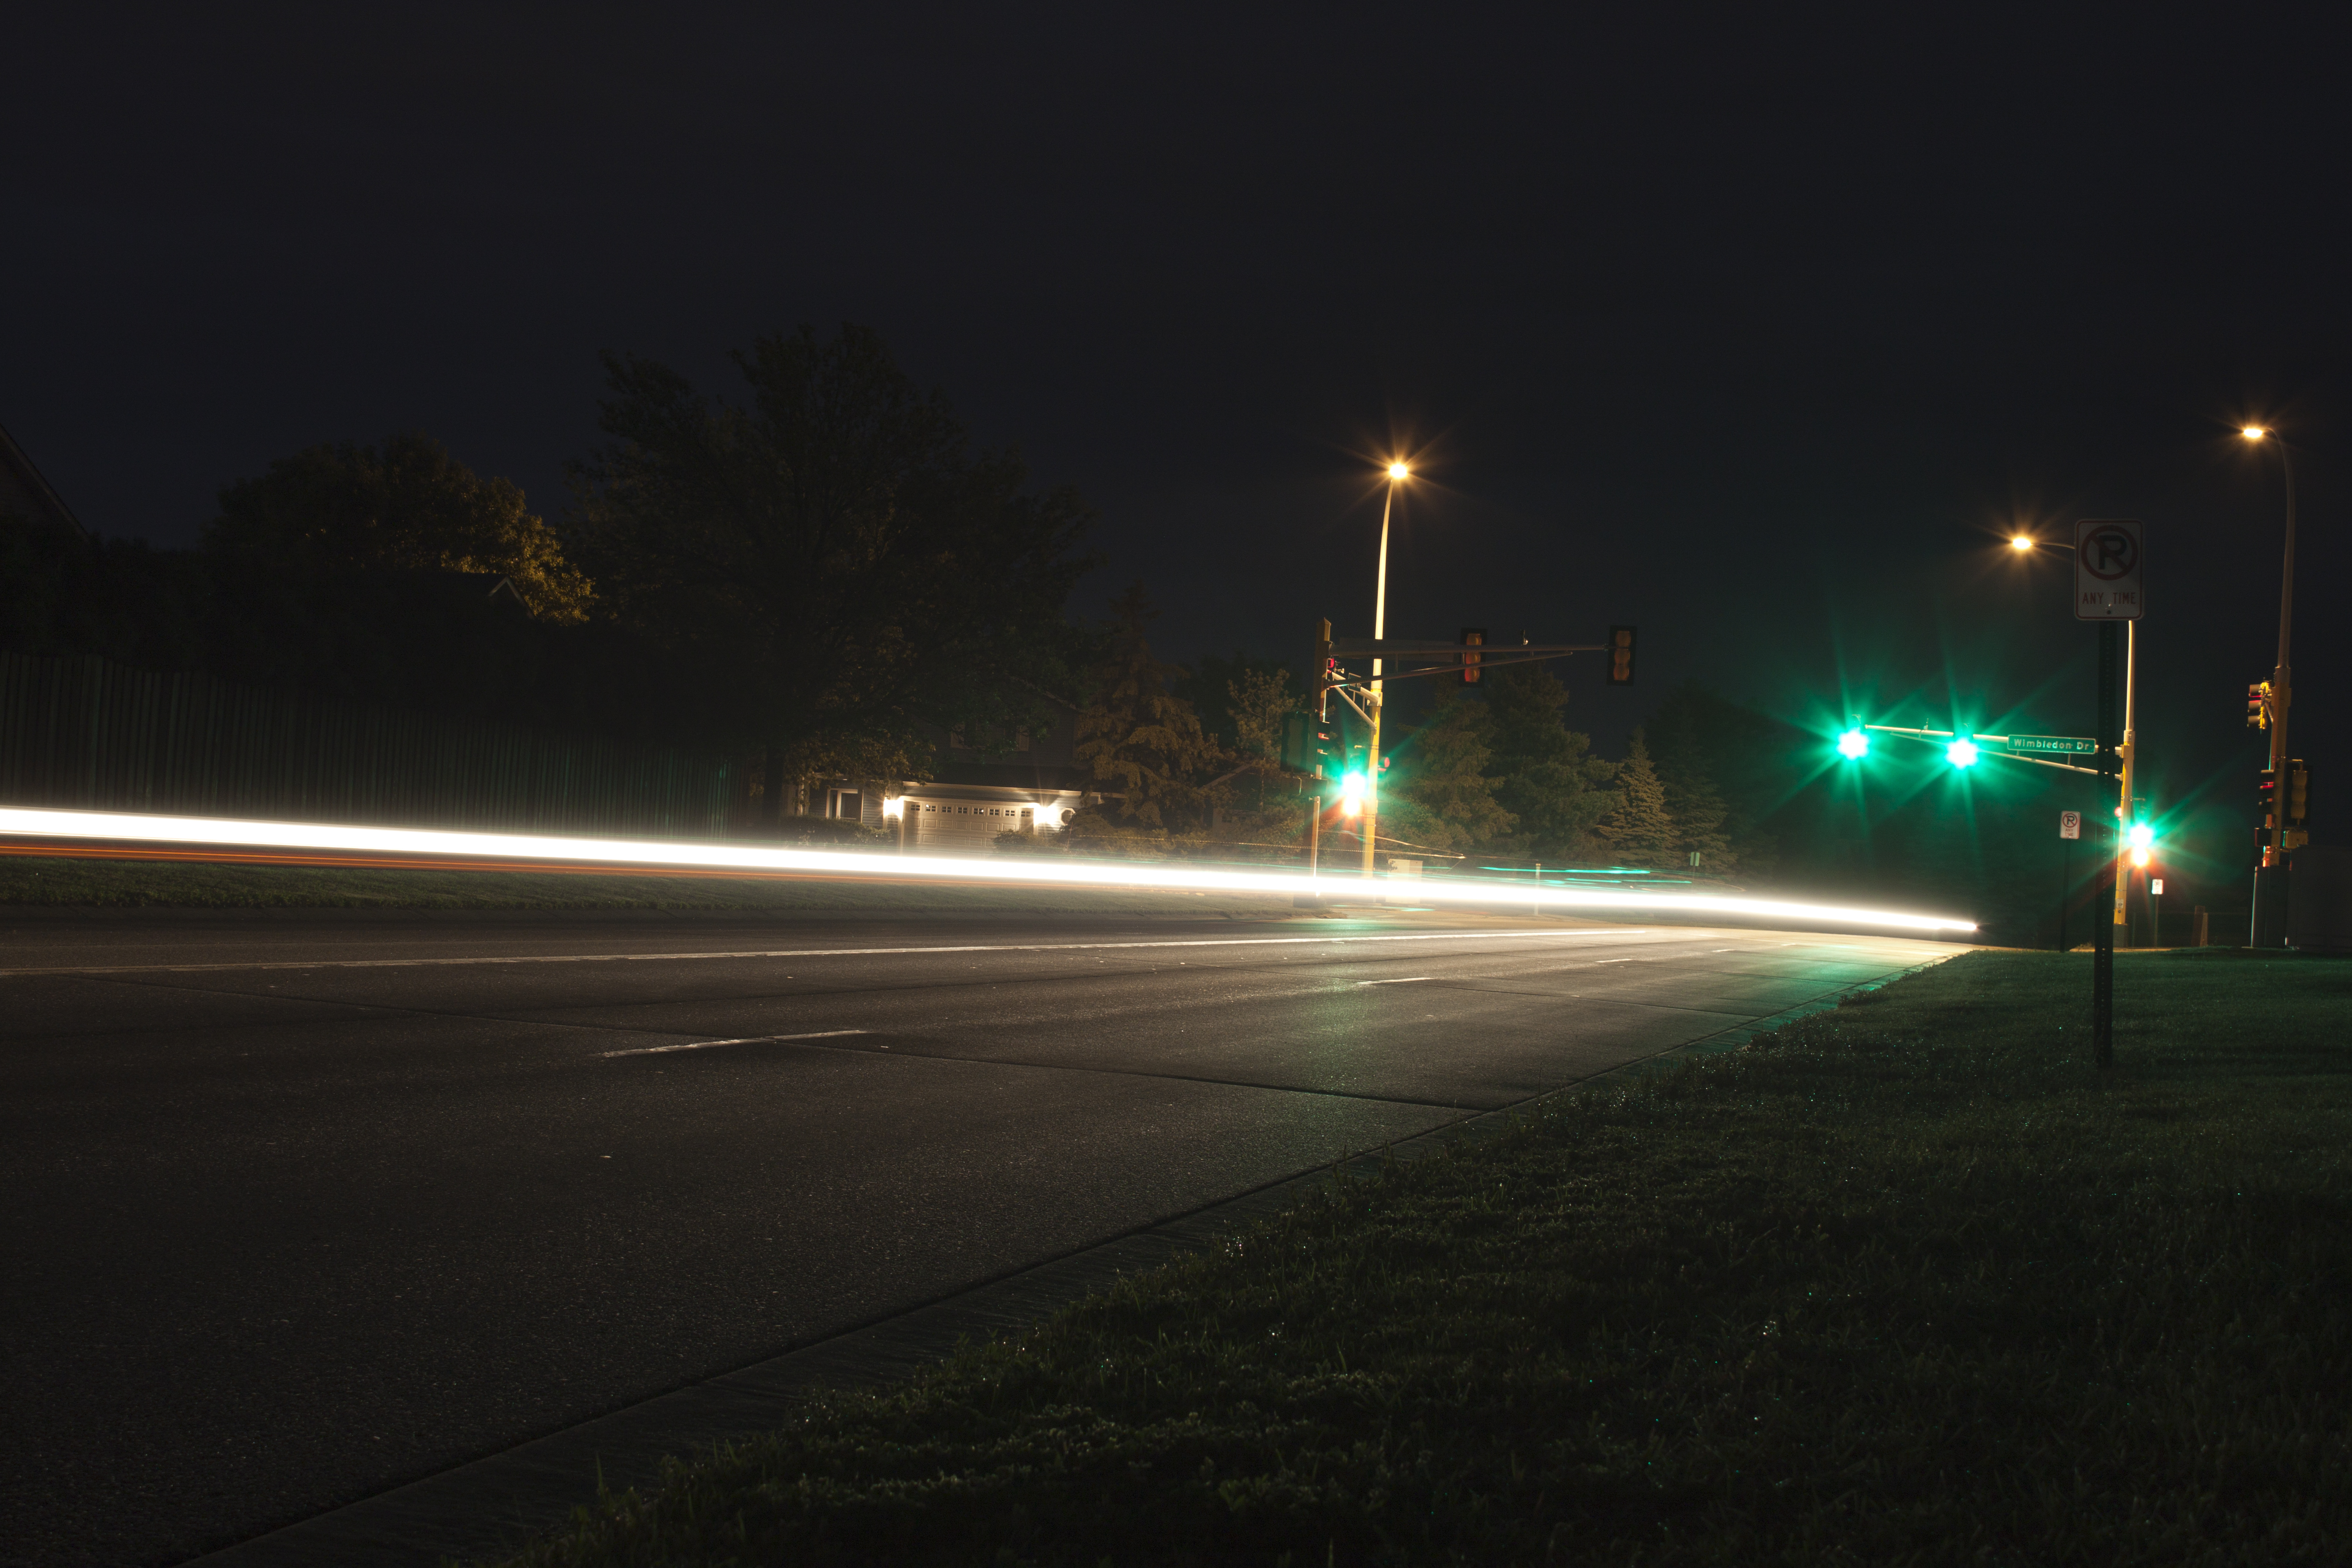 Night+photography+cars